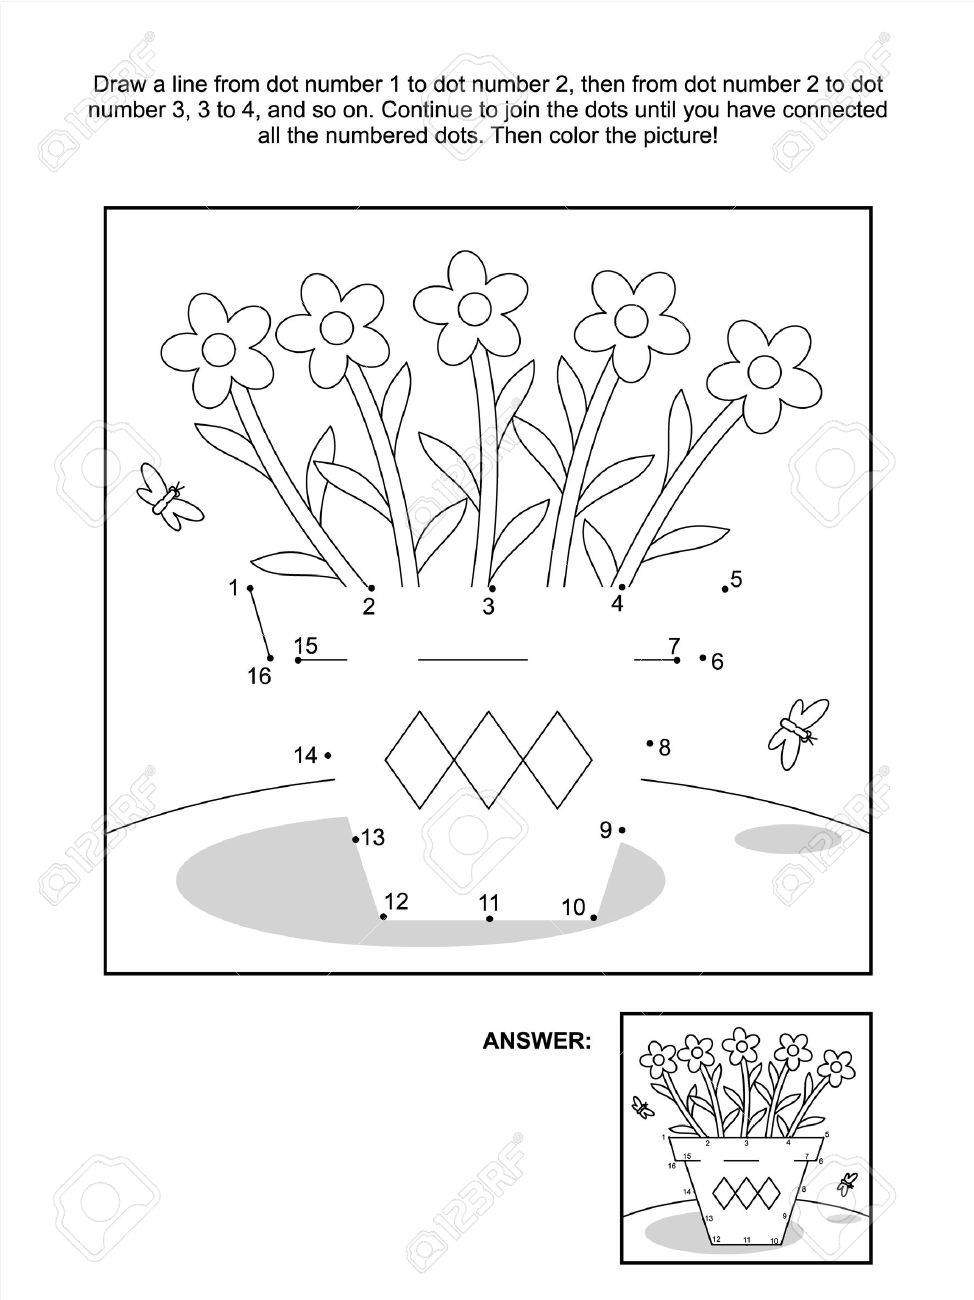 Coloring pages of flower pots - Connect The Dots Picture Puzzle And Coloring Page Flower Pot Flowers Butterflies Answer